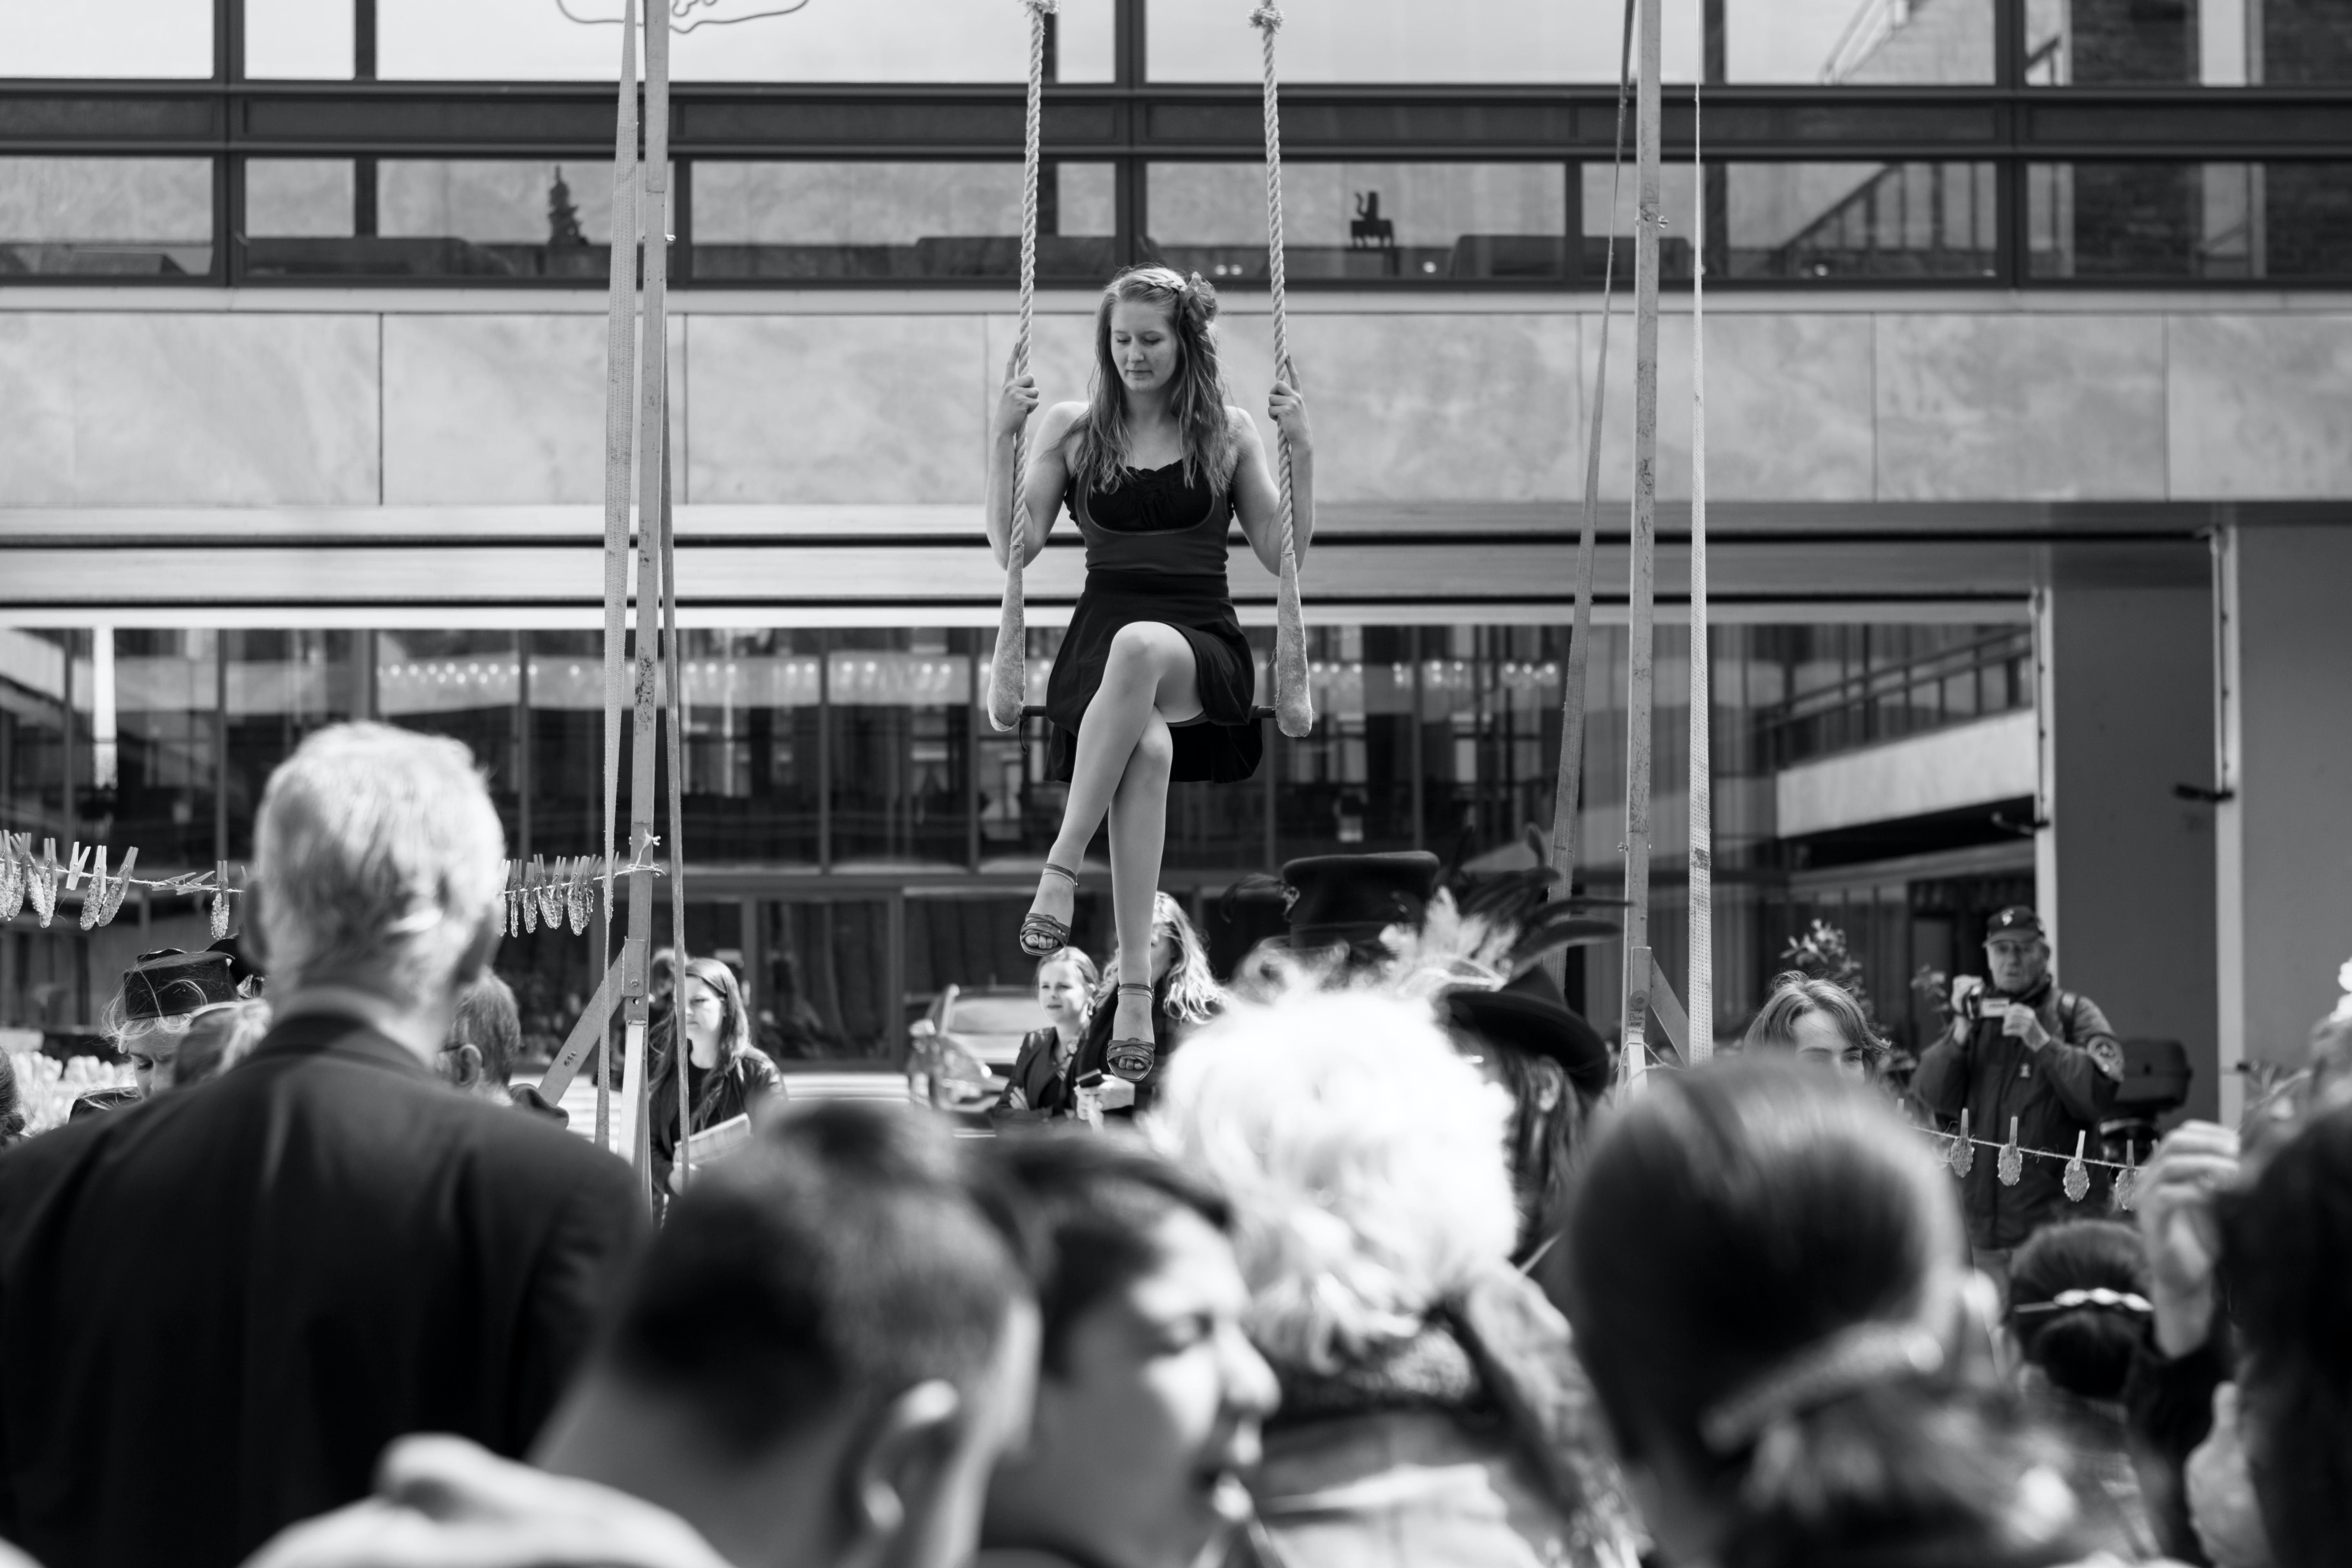 Greyscale Photography of a Crowd around Woman on Swing